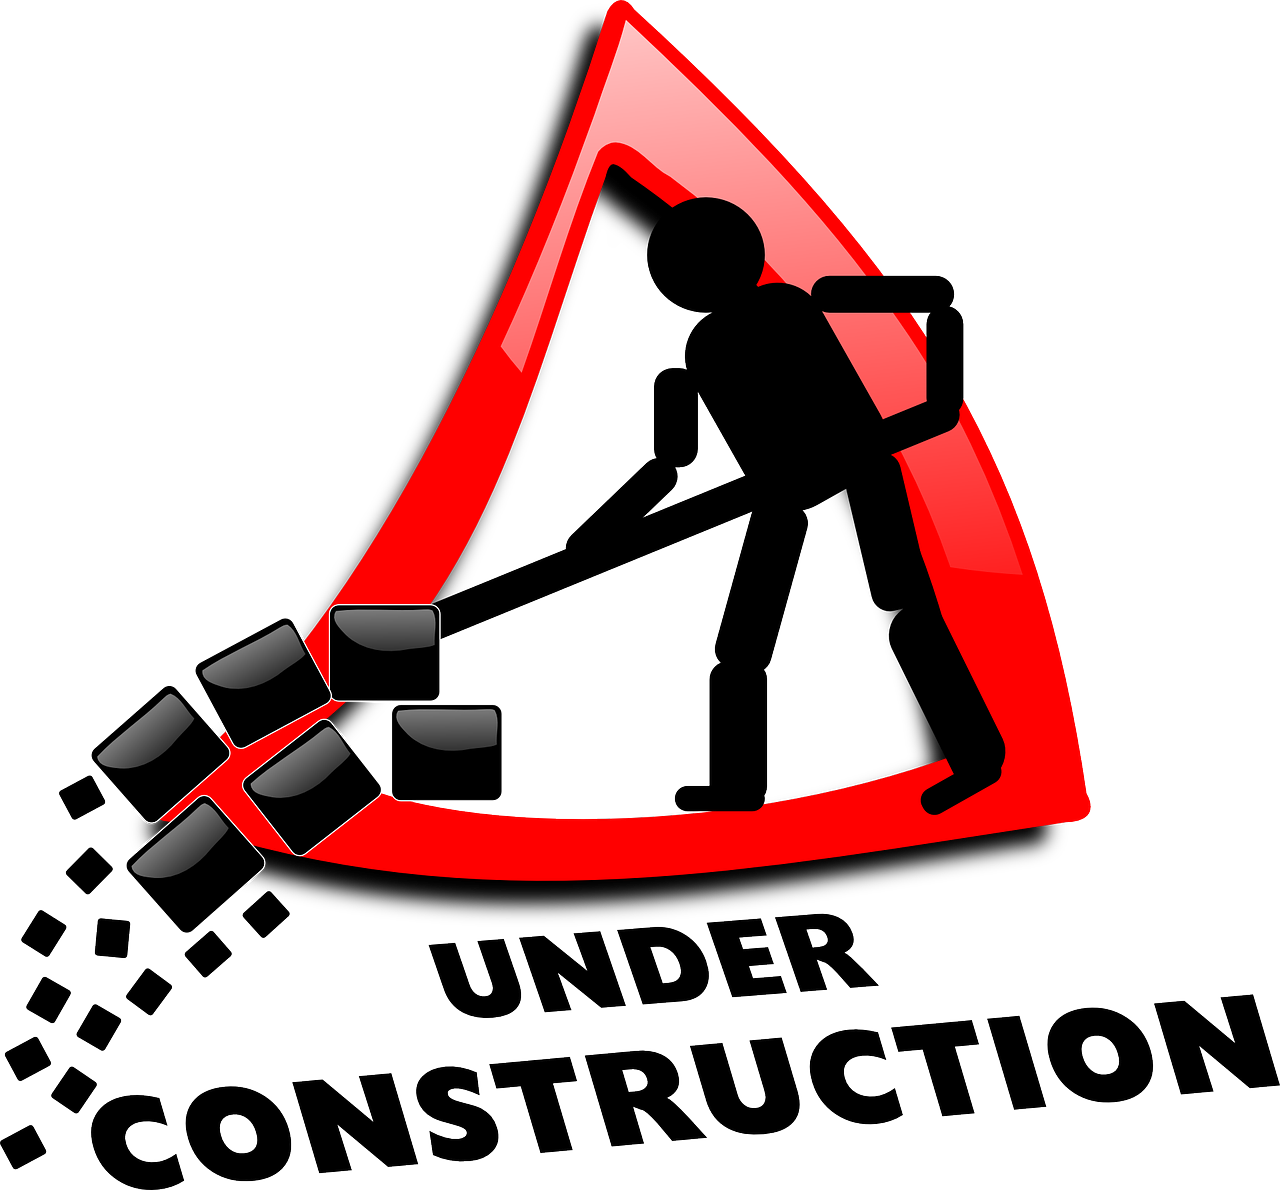 under-construction-150271_1280.png